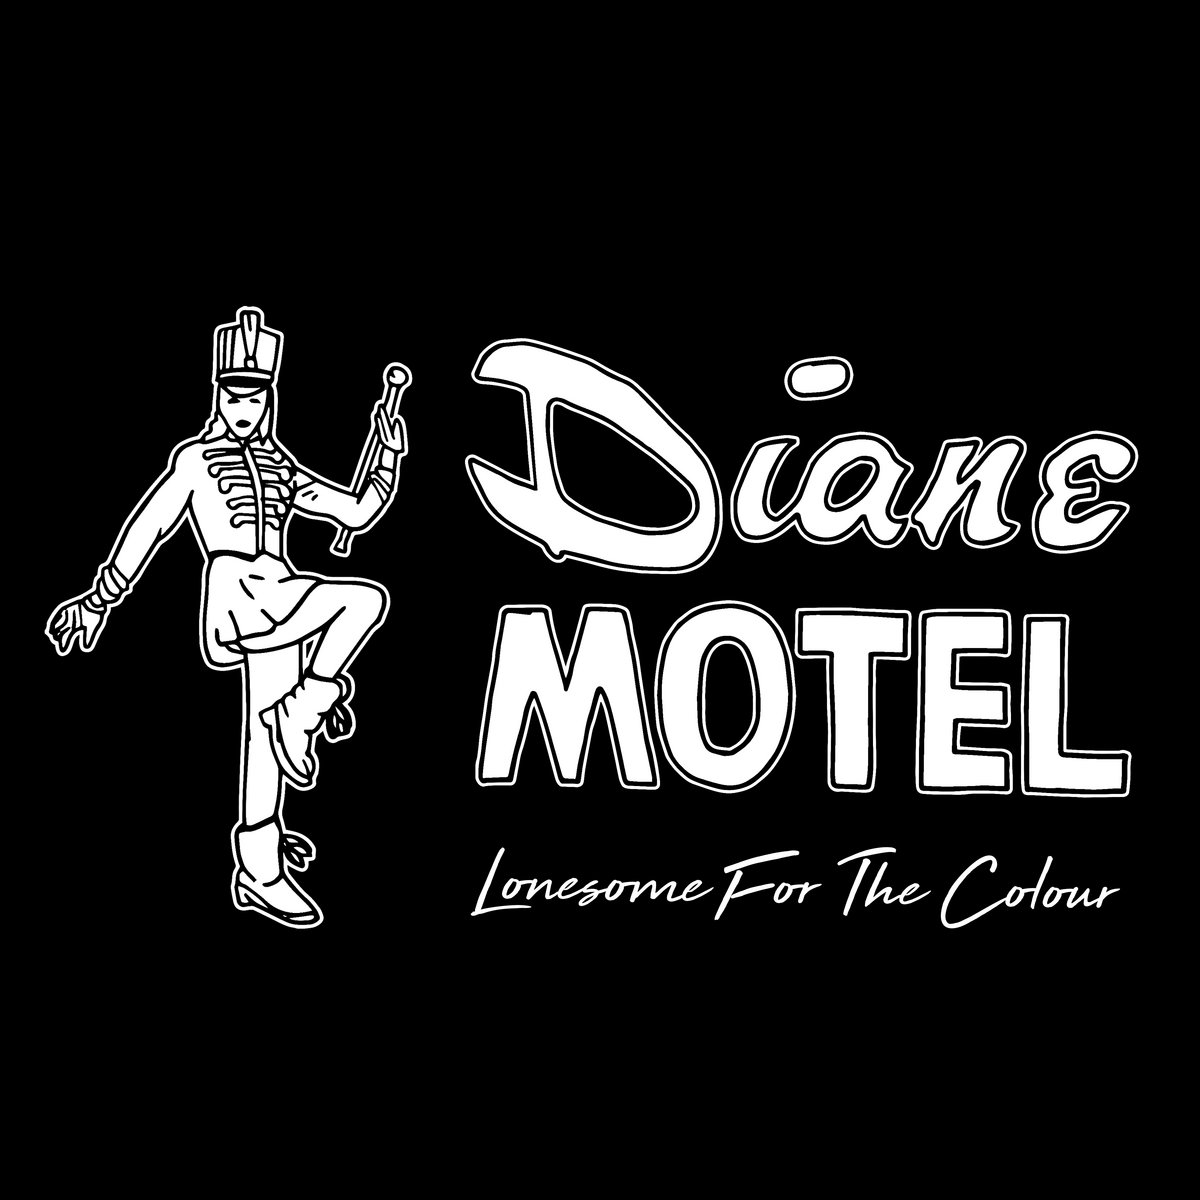 Lonesome For The Colour Diane Motel